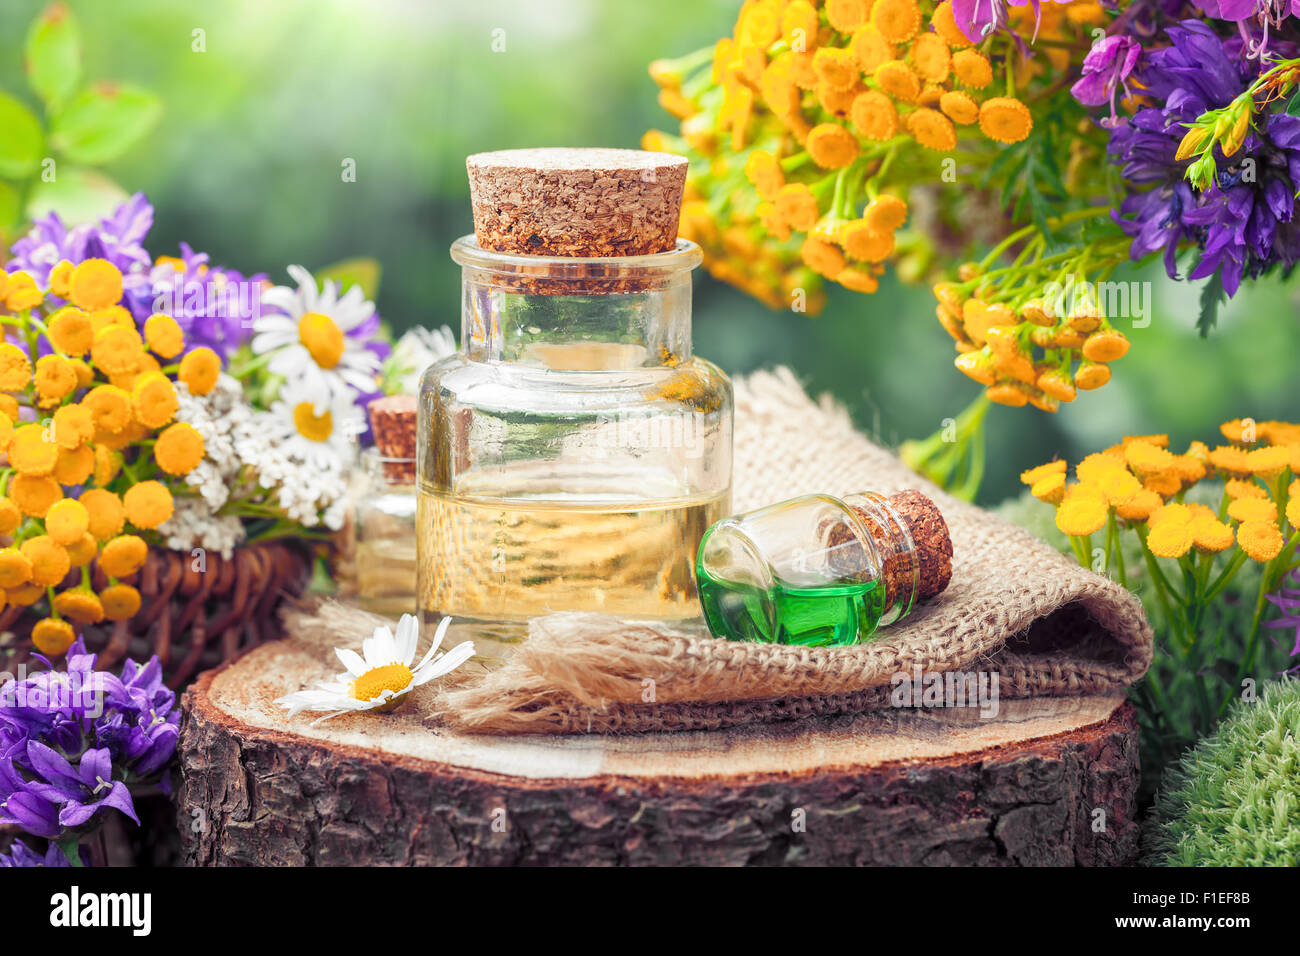 Bottles of essential oil or potion, healing herbs and wildflowers. Herbal medicine. - Stock Image